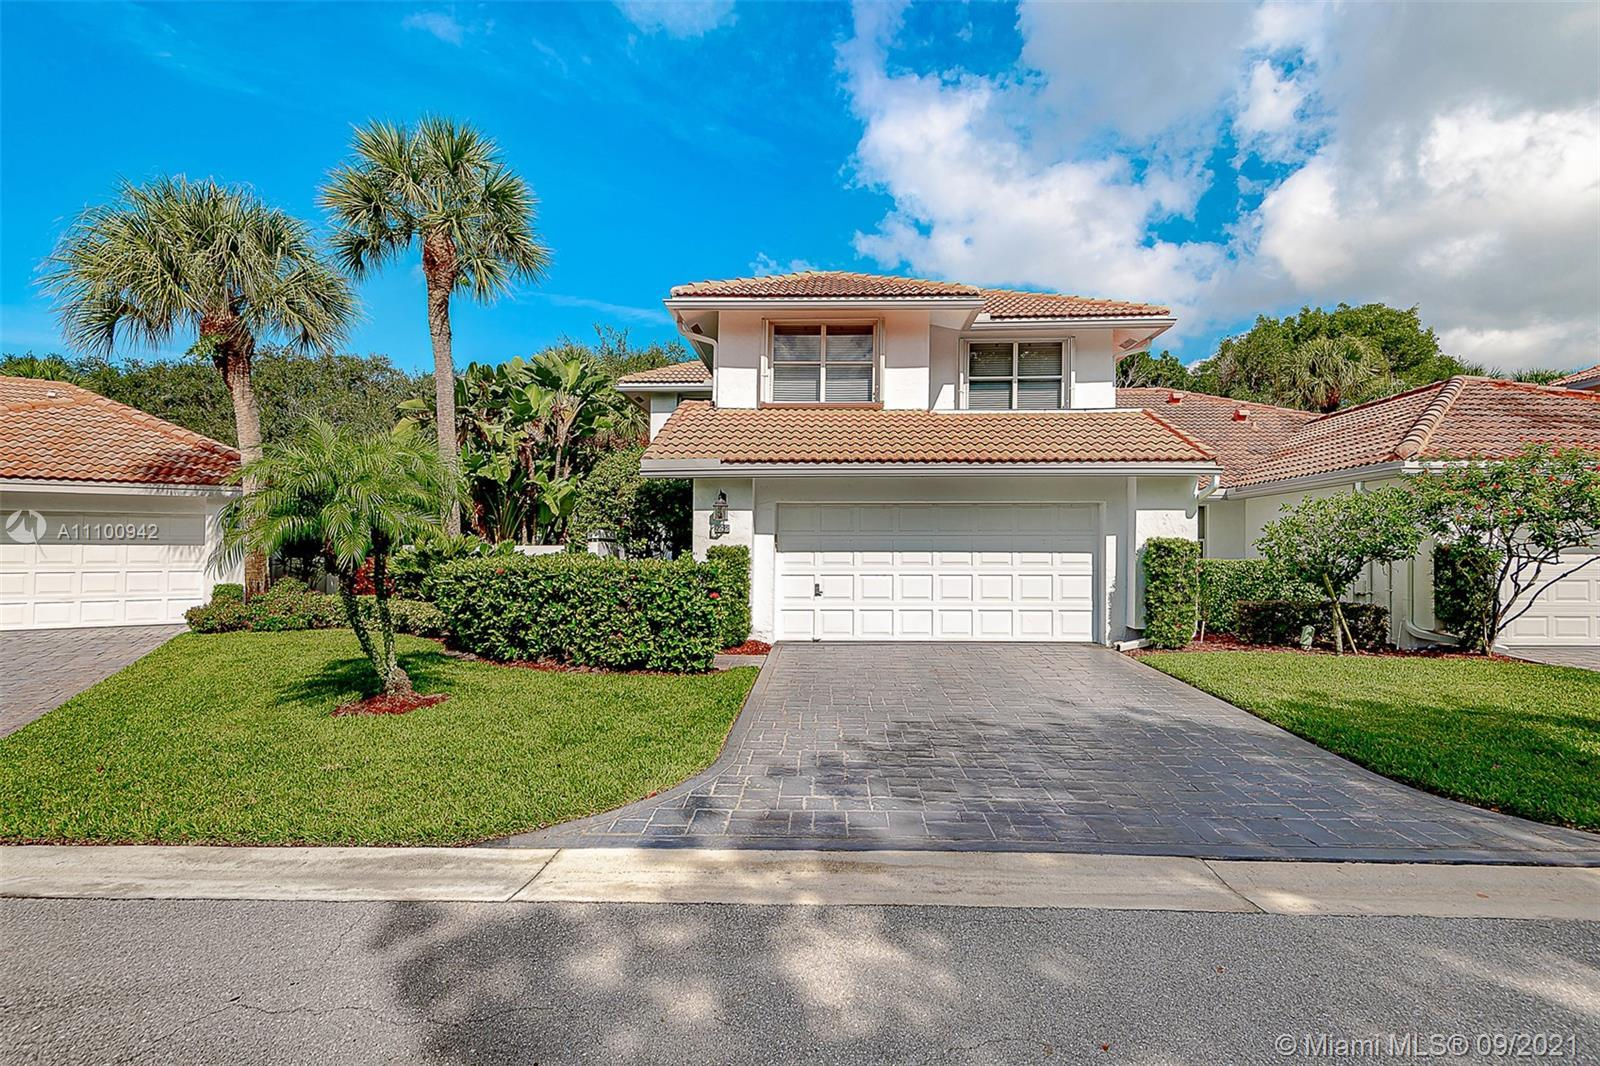 THIS TOWNHOME IS LOCATED IN PRESTIGIOUS BROKEN SOUND RIGHT ON THE GOLF COURSE! THE HOME IS A 3 BEDRO